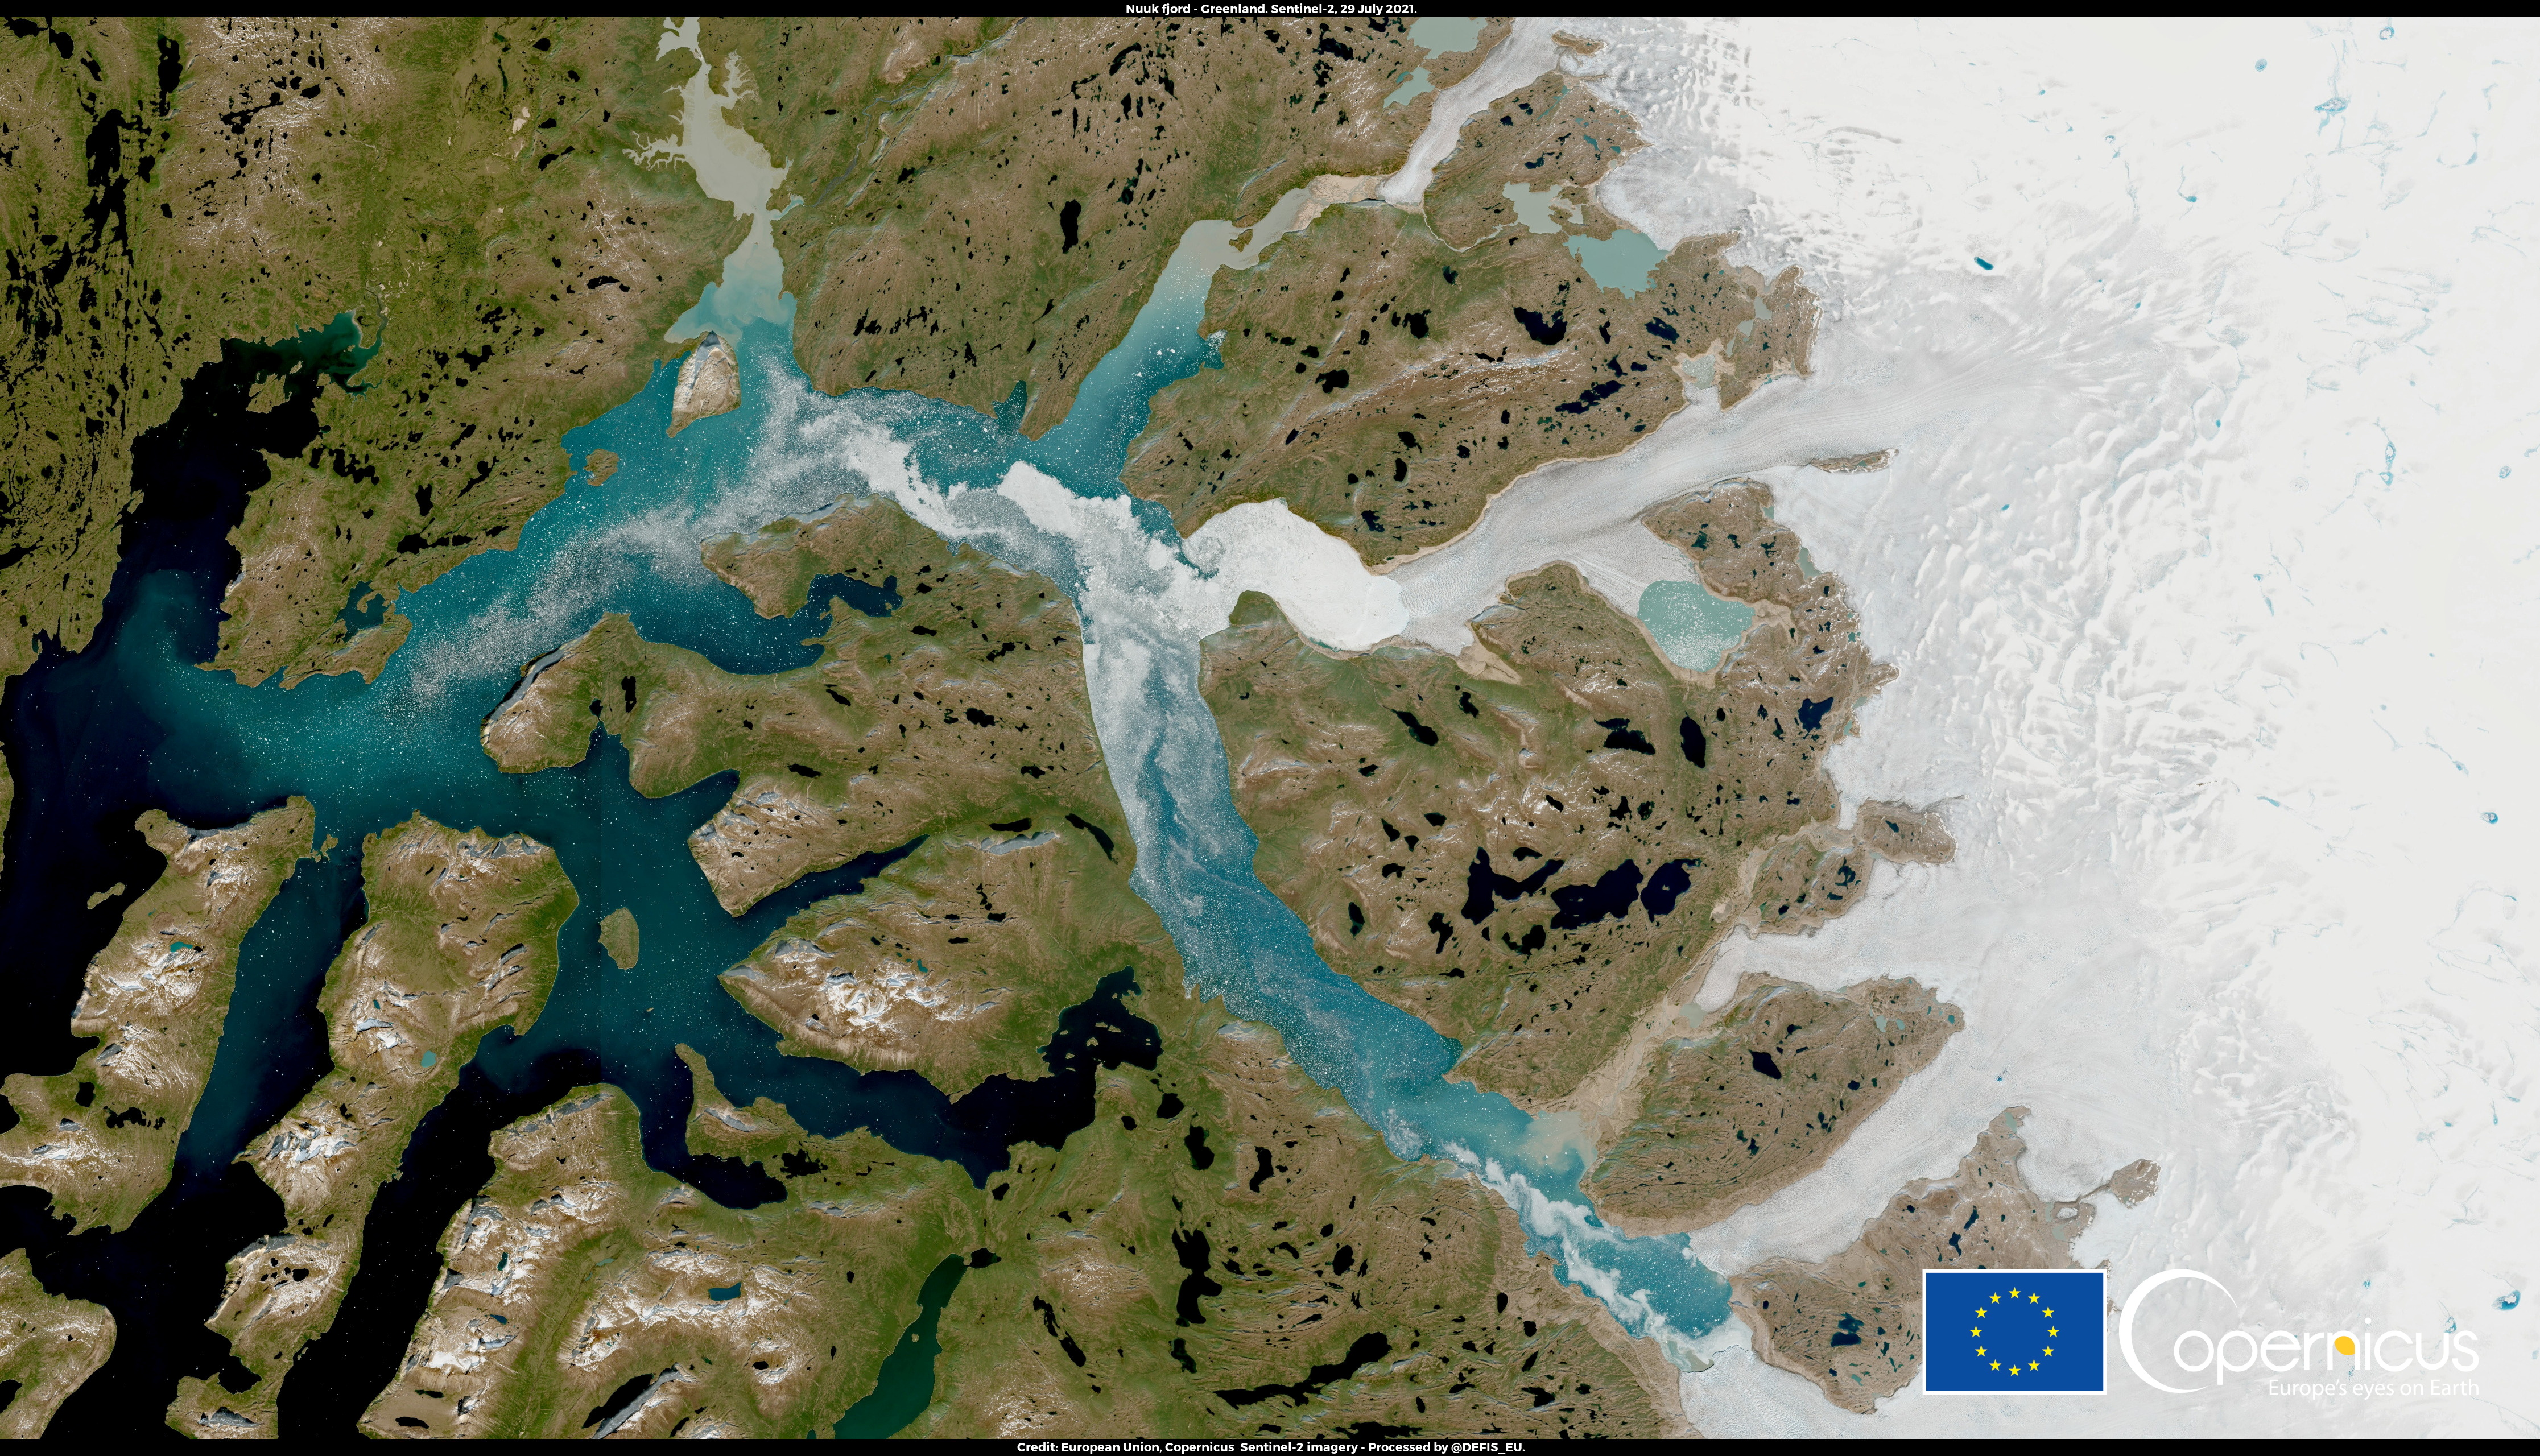 A satellite image shows Nuuk Fjord, Greenland July 29, 2021. European Union, Copernicus Sentinel-2 imagery - Processed by @DEFIS_EU/Handout via REUTERS